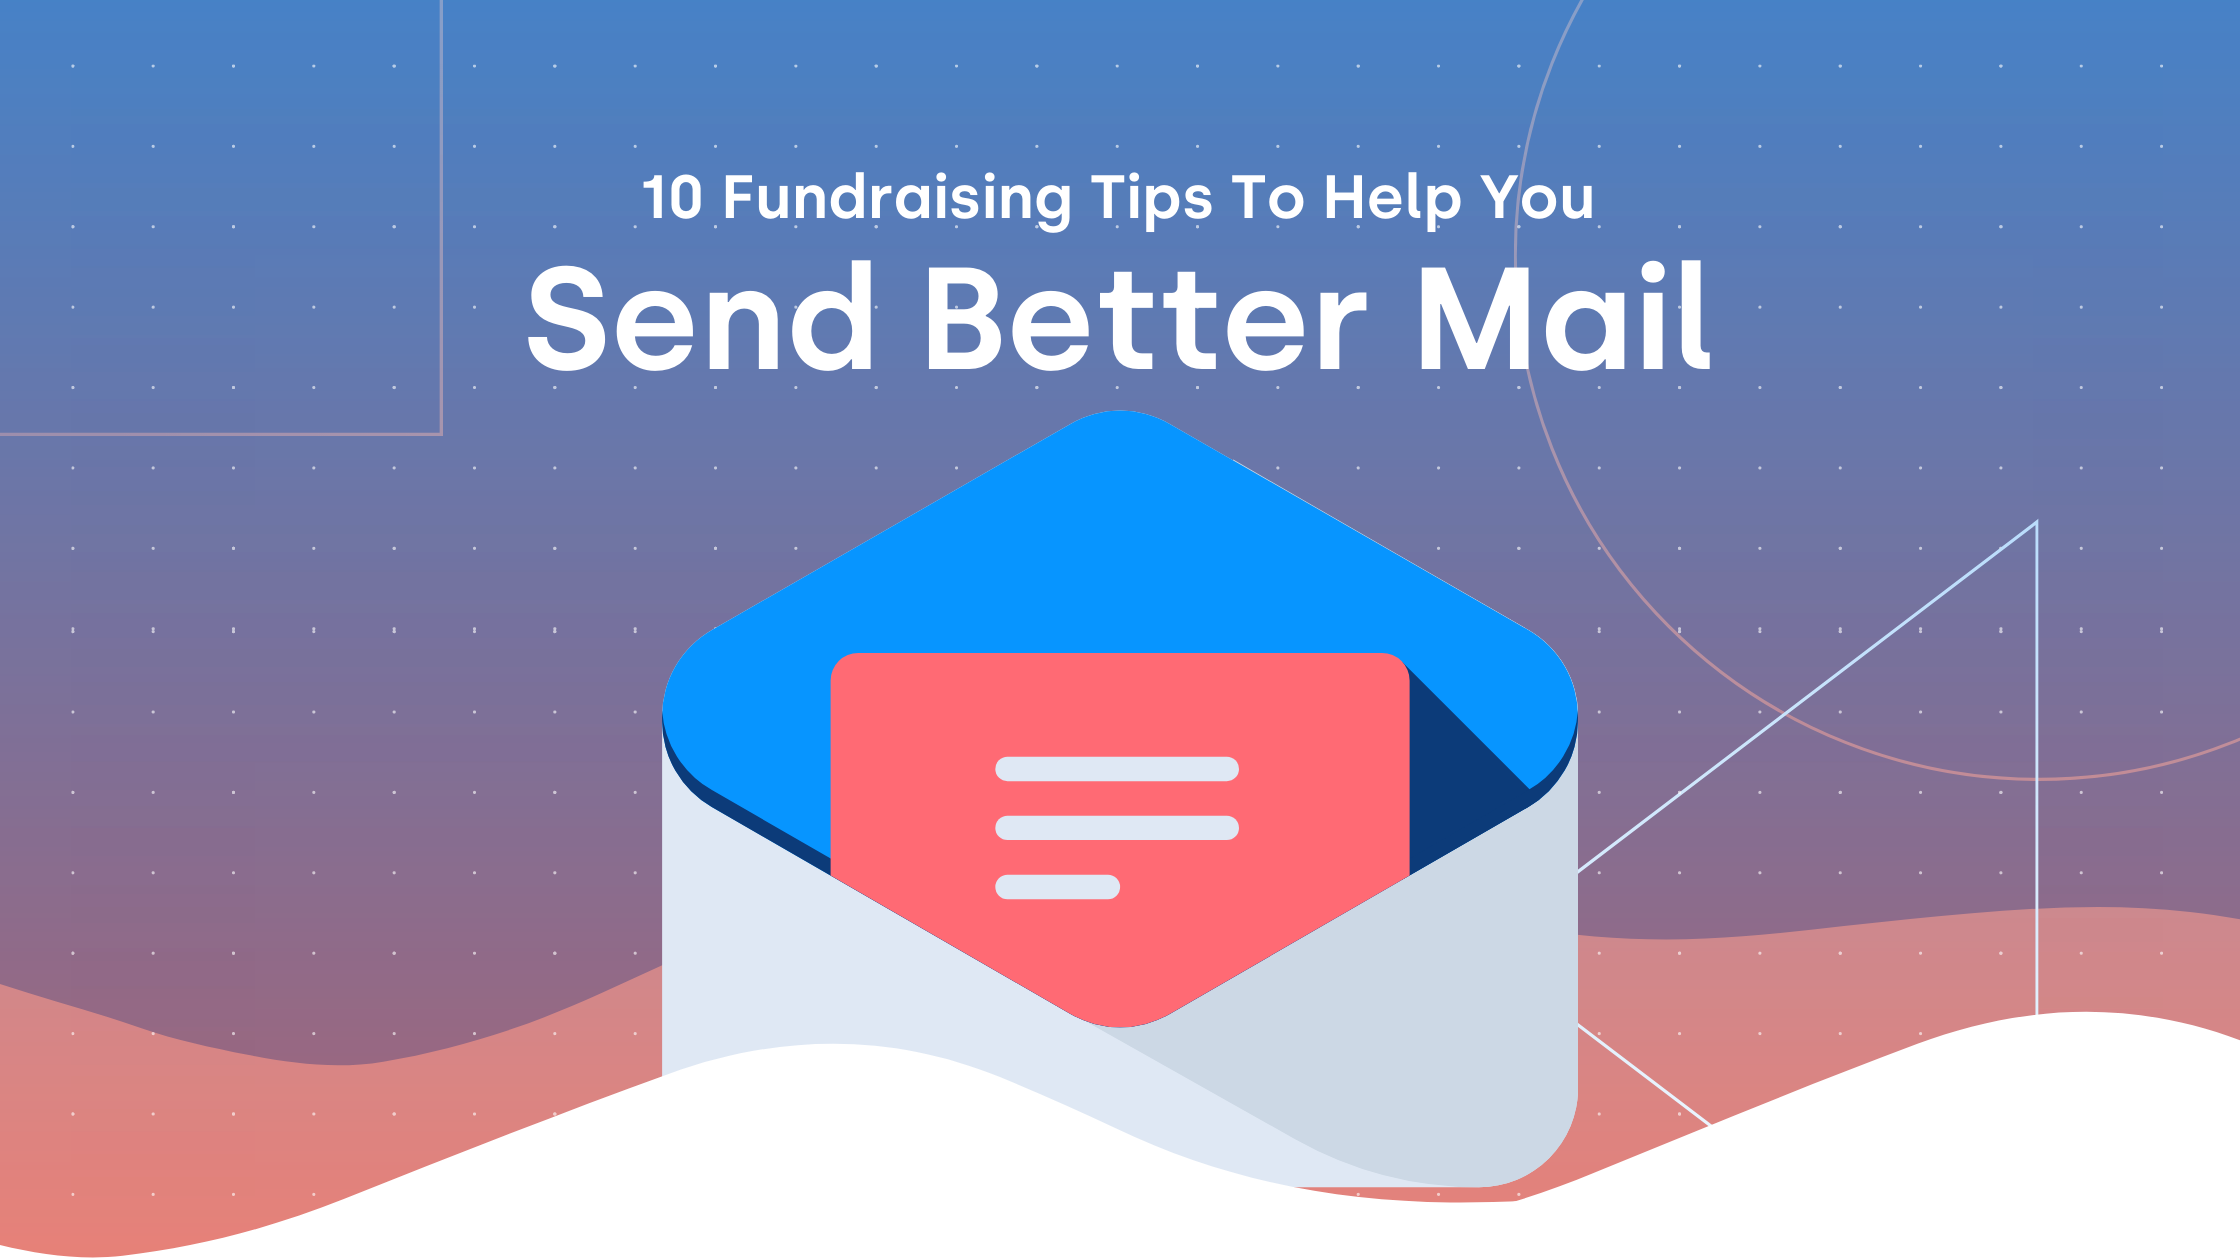 How to Ask For Funds Via Direct Mail